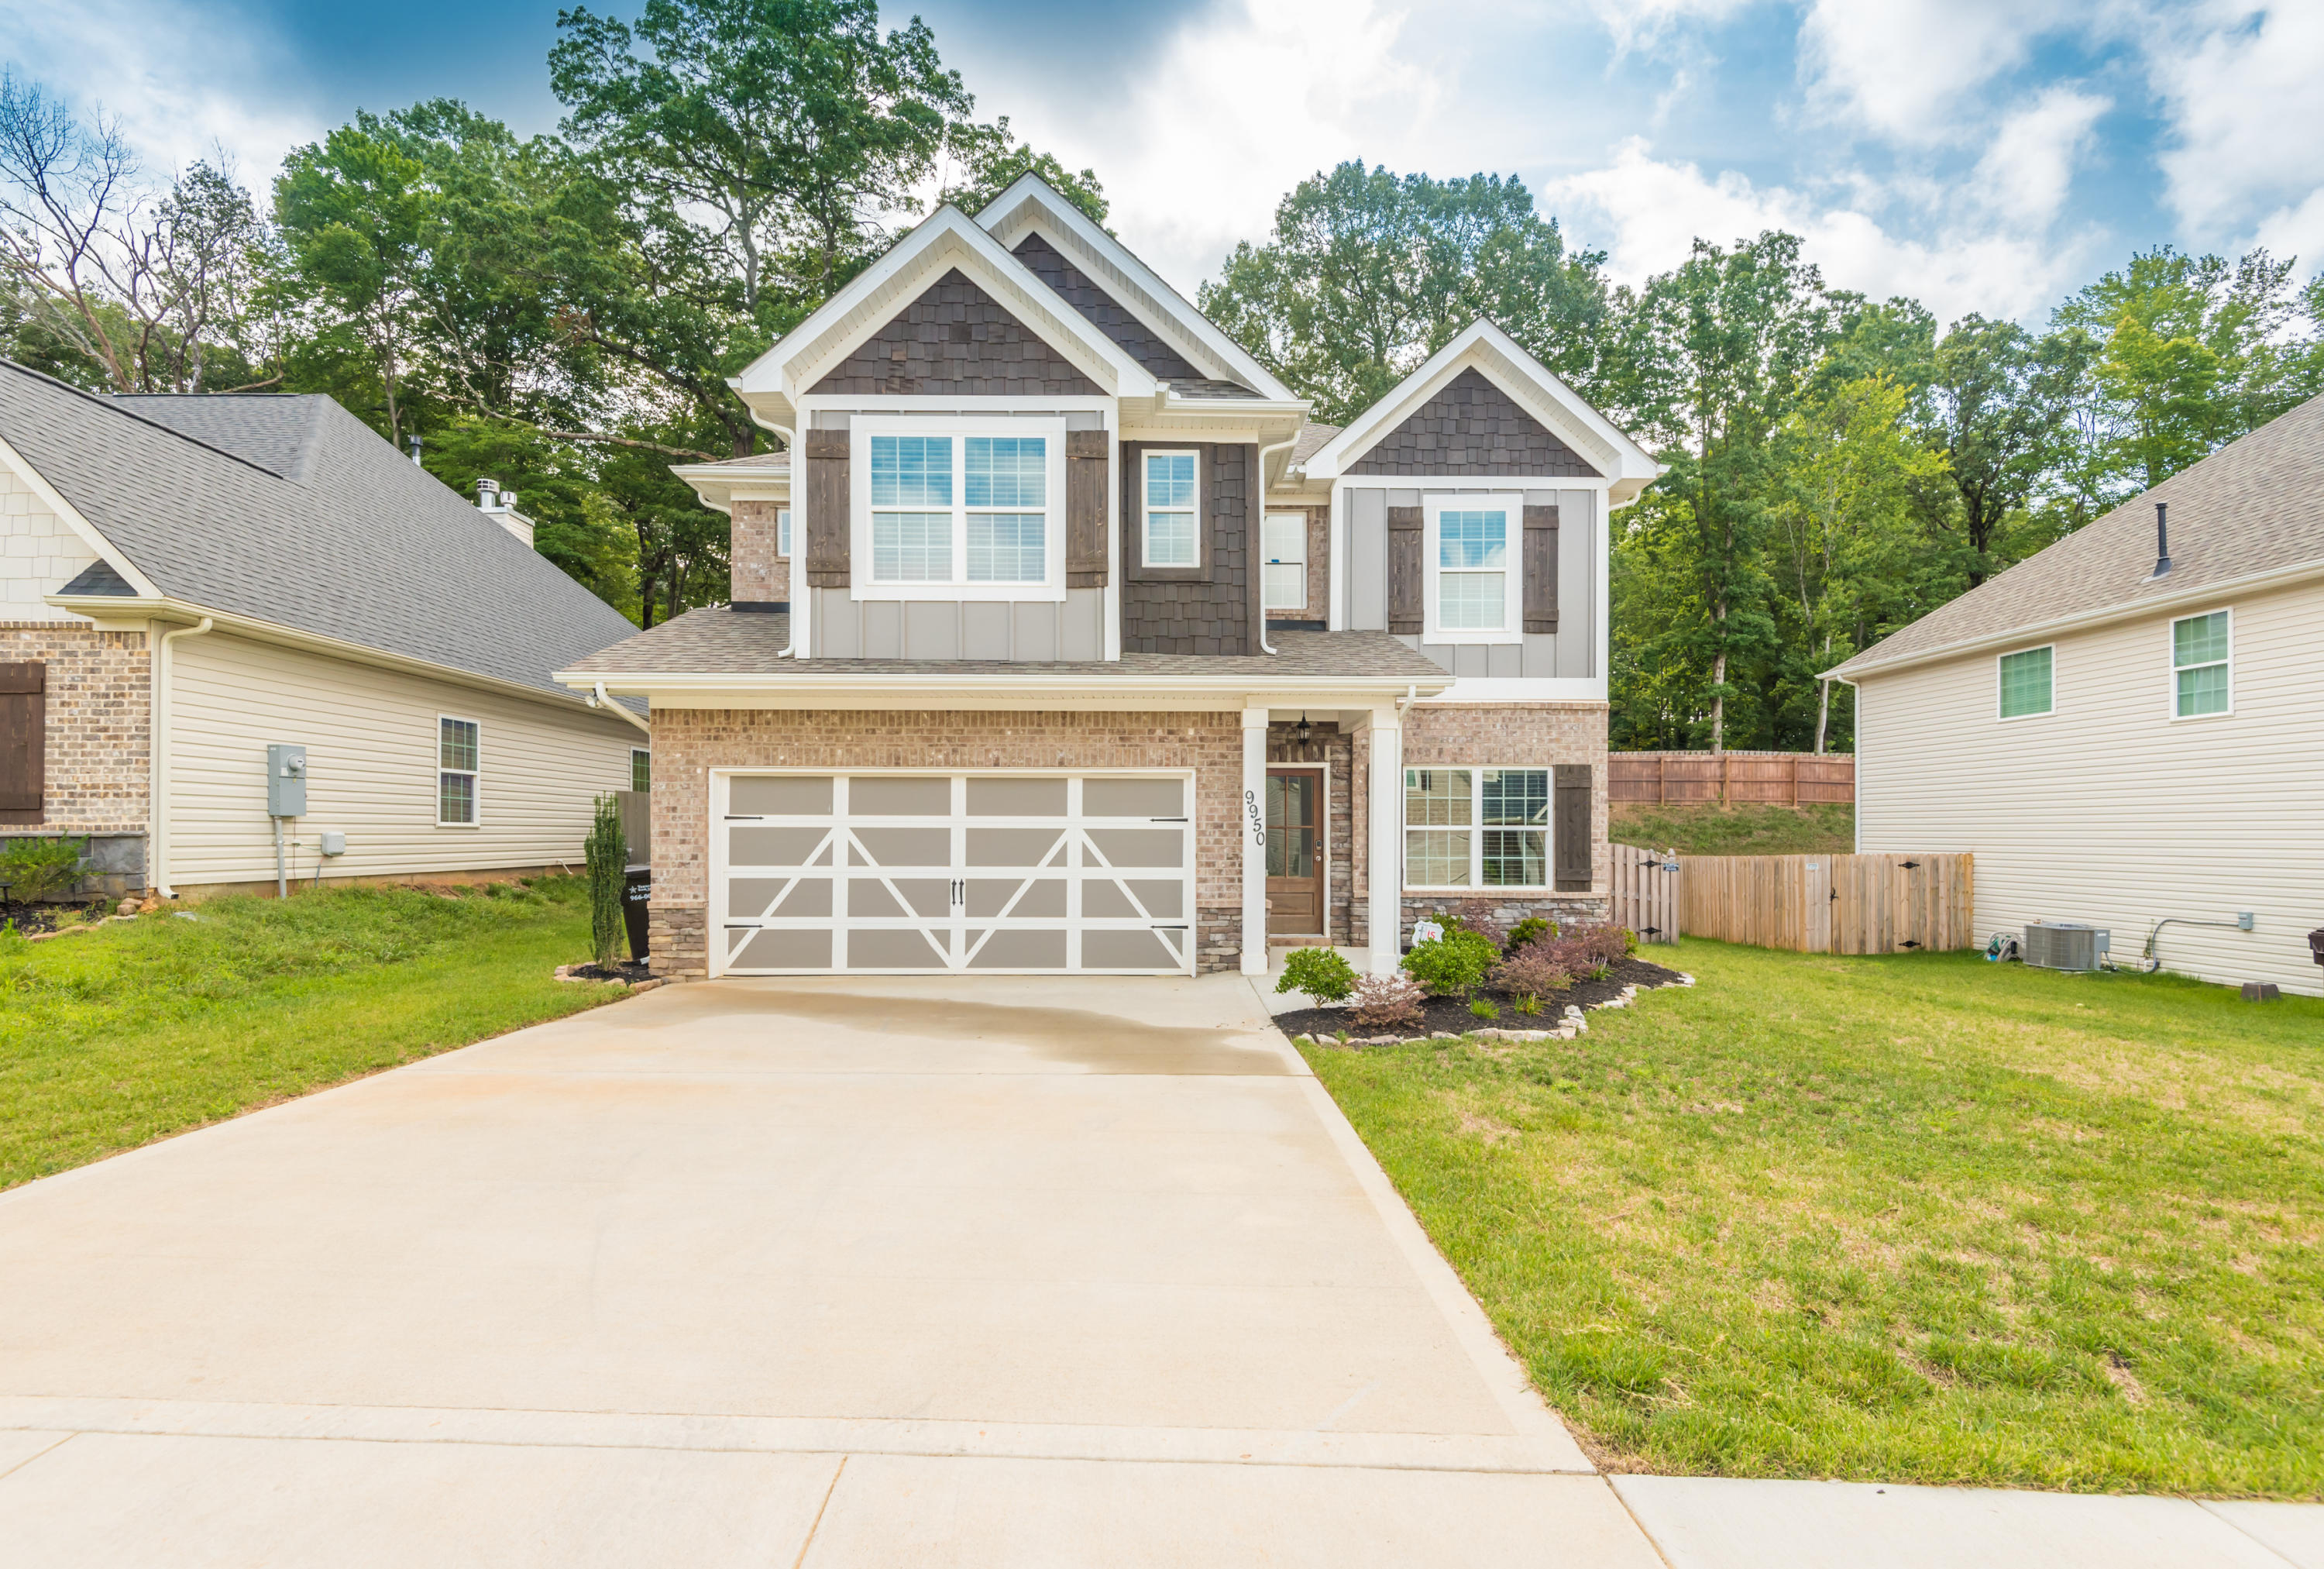 9950 Hummingbird, Knoxville, Tennessee, United States 37923, 4 Bedrooms Bedrooms, ,2 BathroomsBathrooms,Single Family,For Sale,Hummingbird,1126042